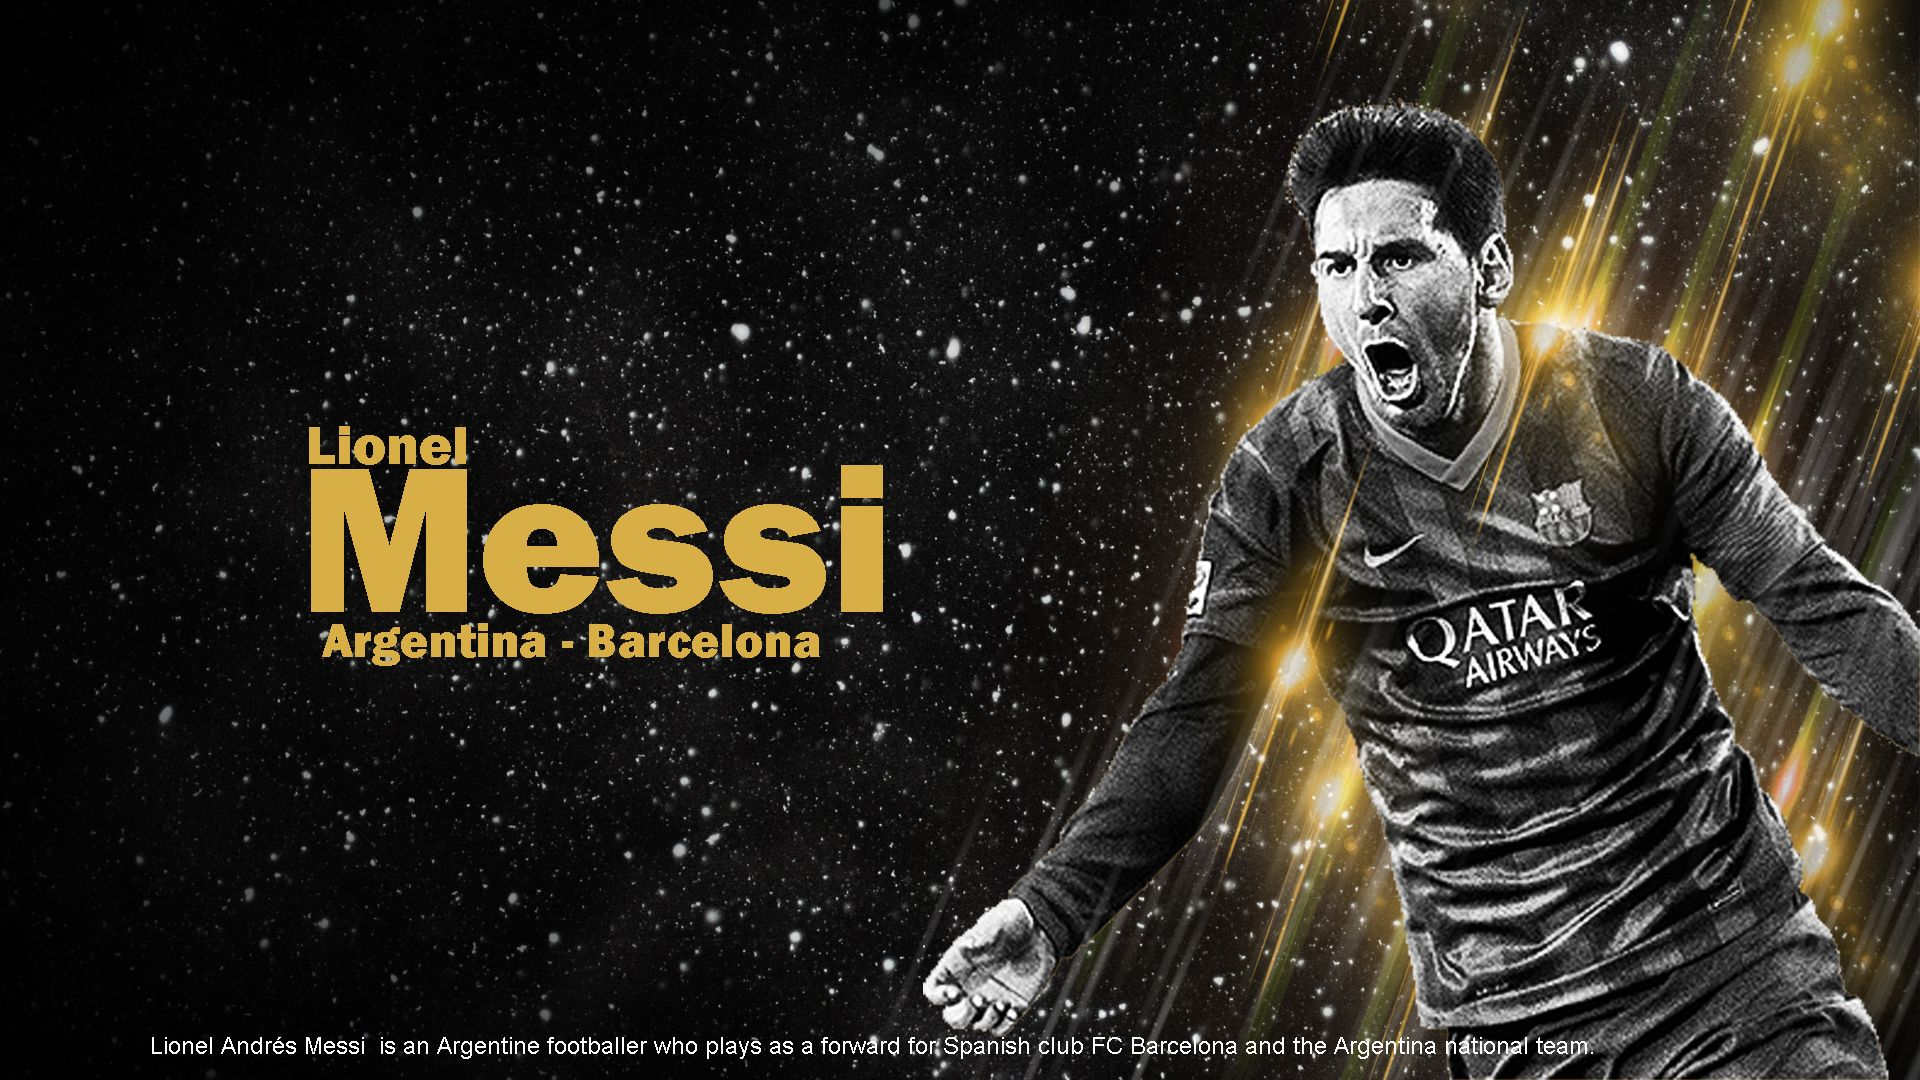 Image For 8123 Lionel Messi Wallpapers 2015